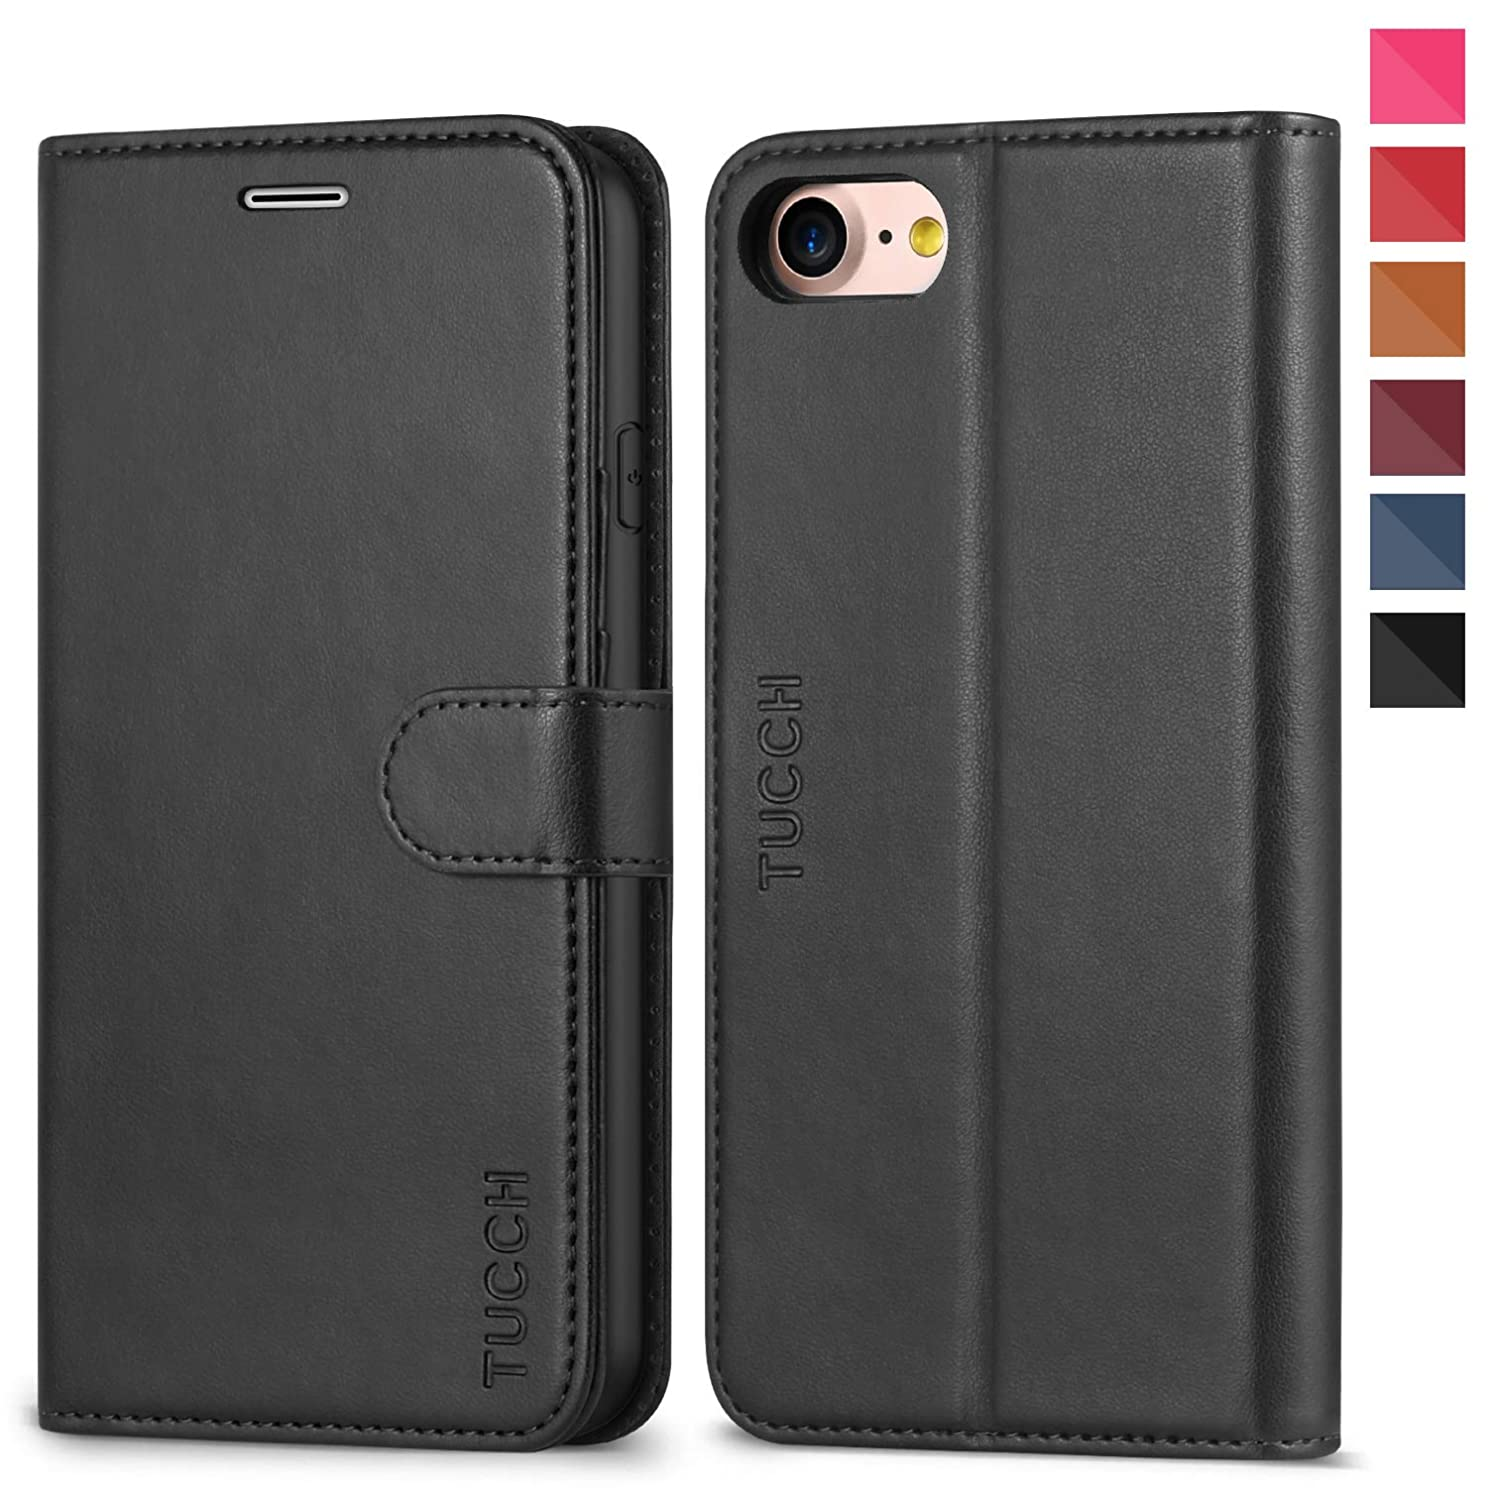 e7079f37c5 TUCCH iPhone 8 Case, iPhone 7 Case iPhone 8 Leather Case, Wallet Case  with[Kickstand][TPU Inner Shell][Card Holders][Magnetic Closure] Leather  Folio Case ...